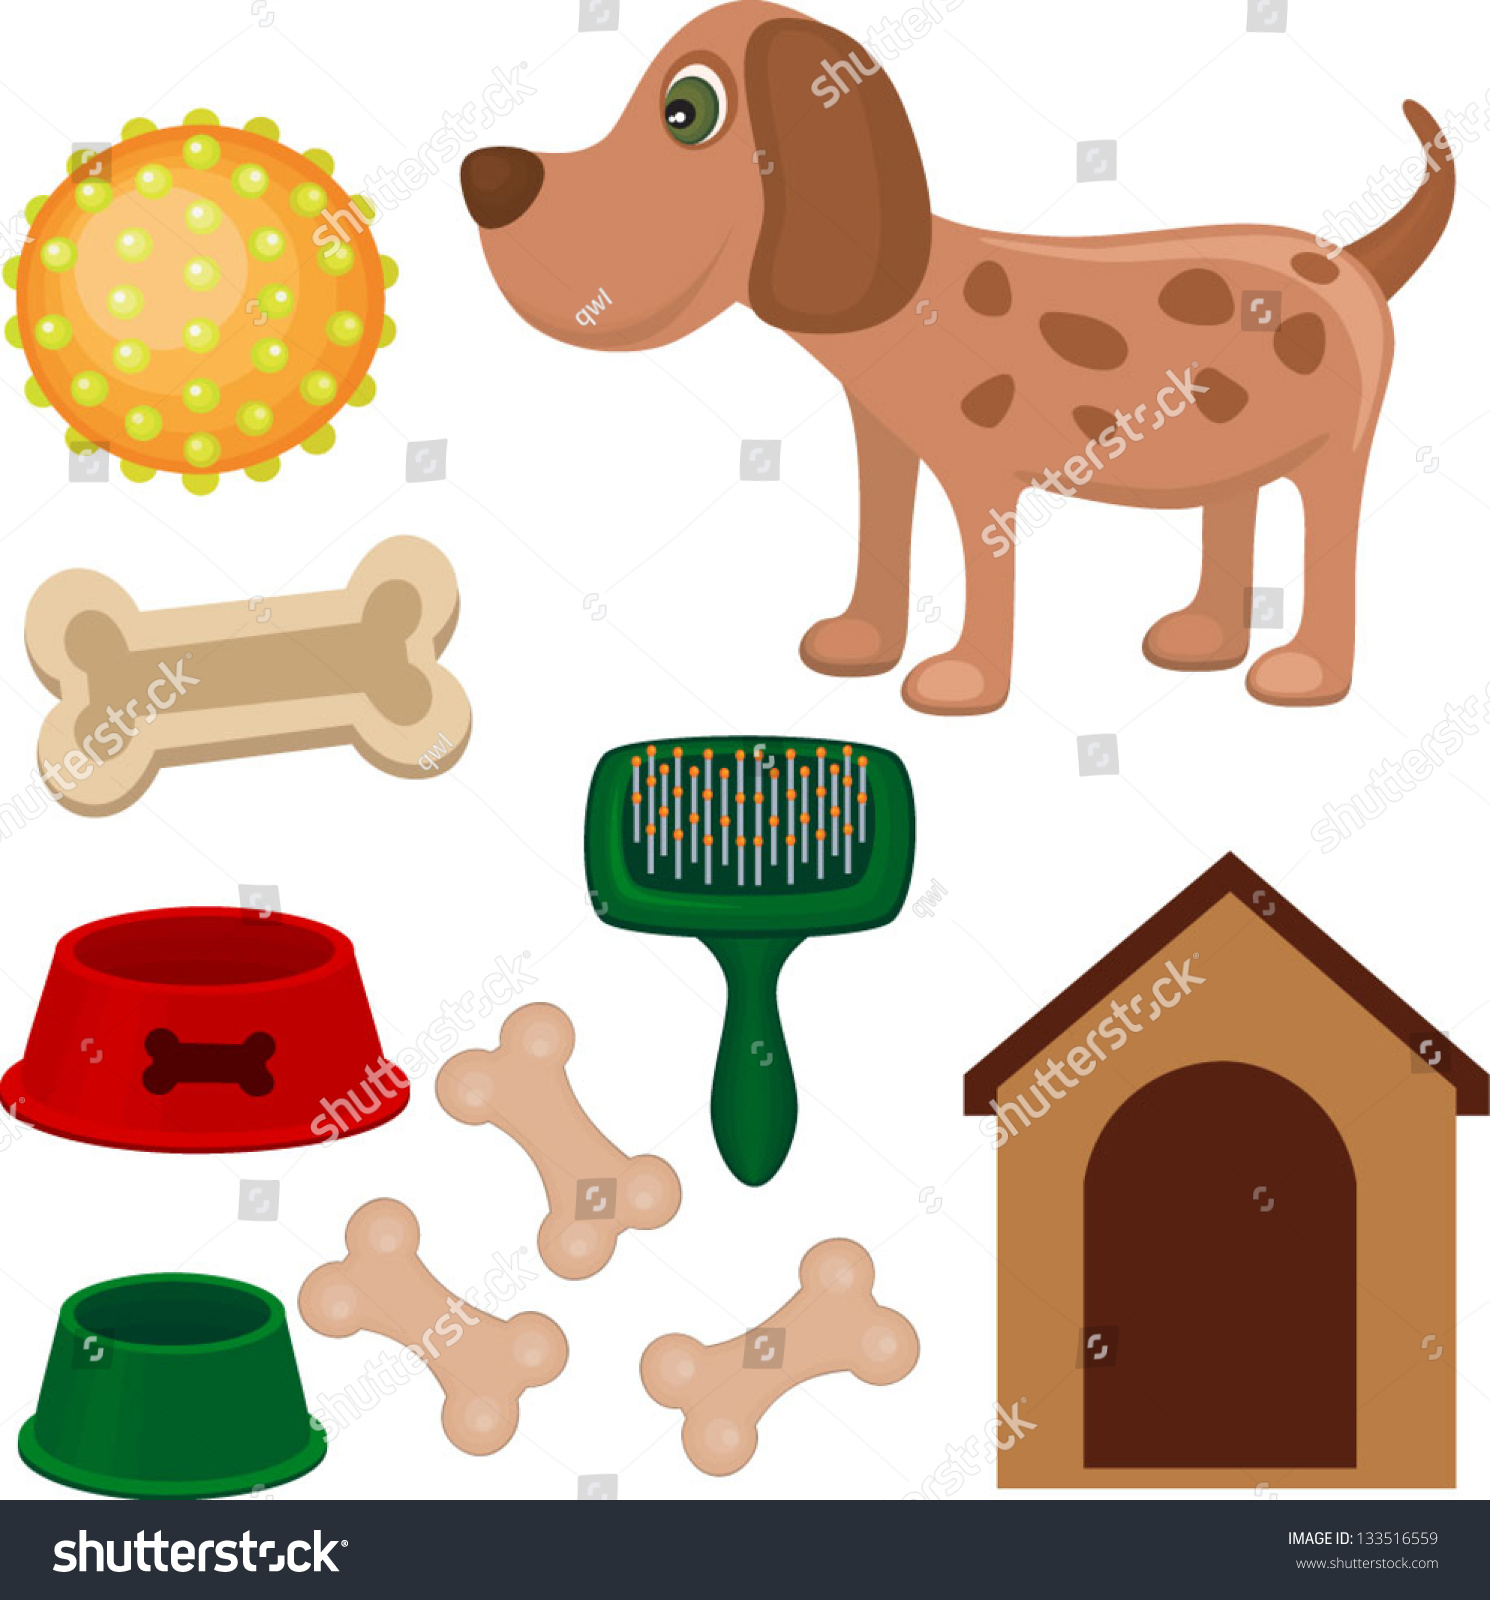 Toy Food Clip Art : Illustration of dog dogs food toy brush and kennel